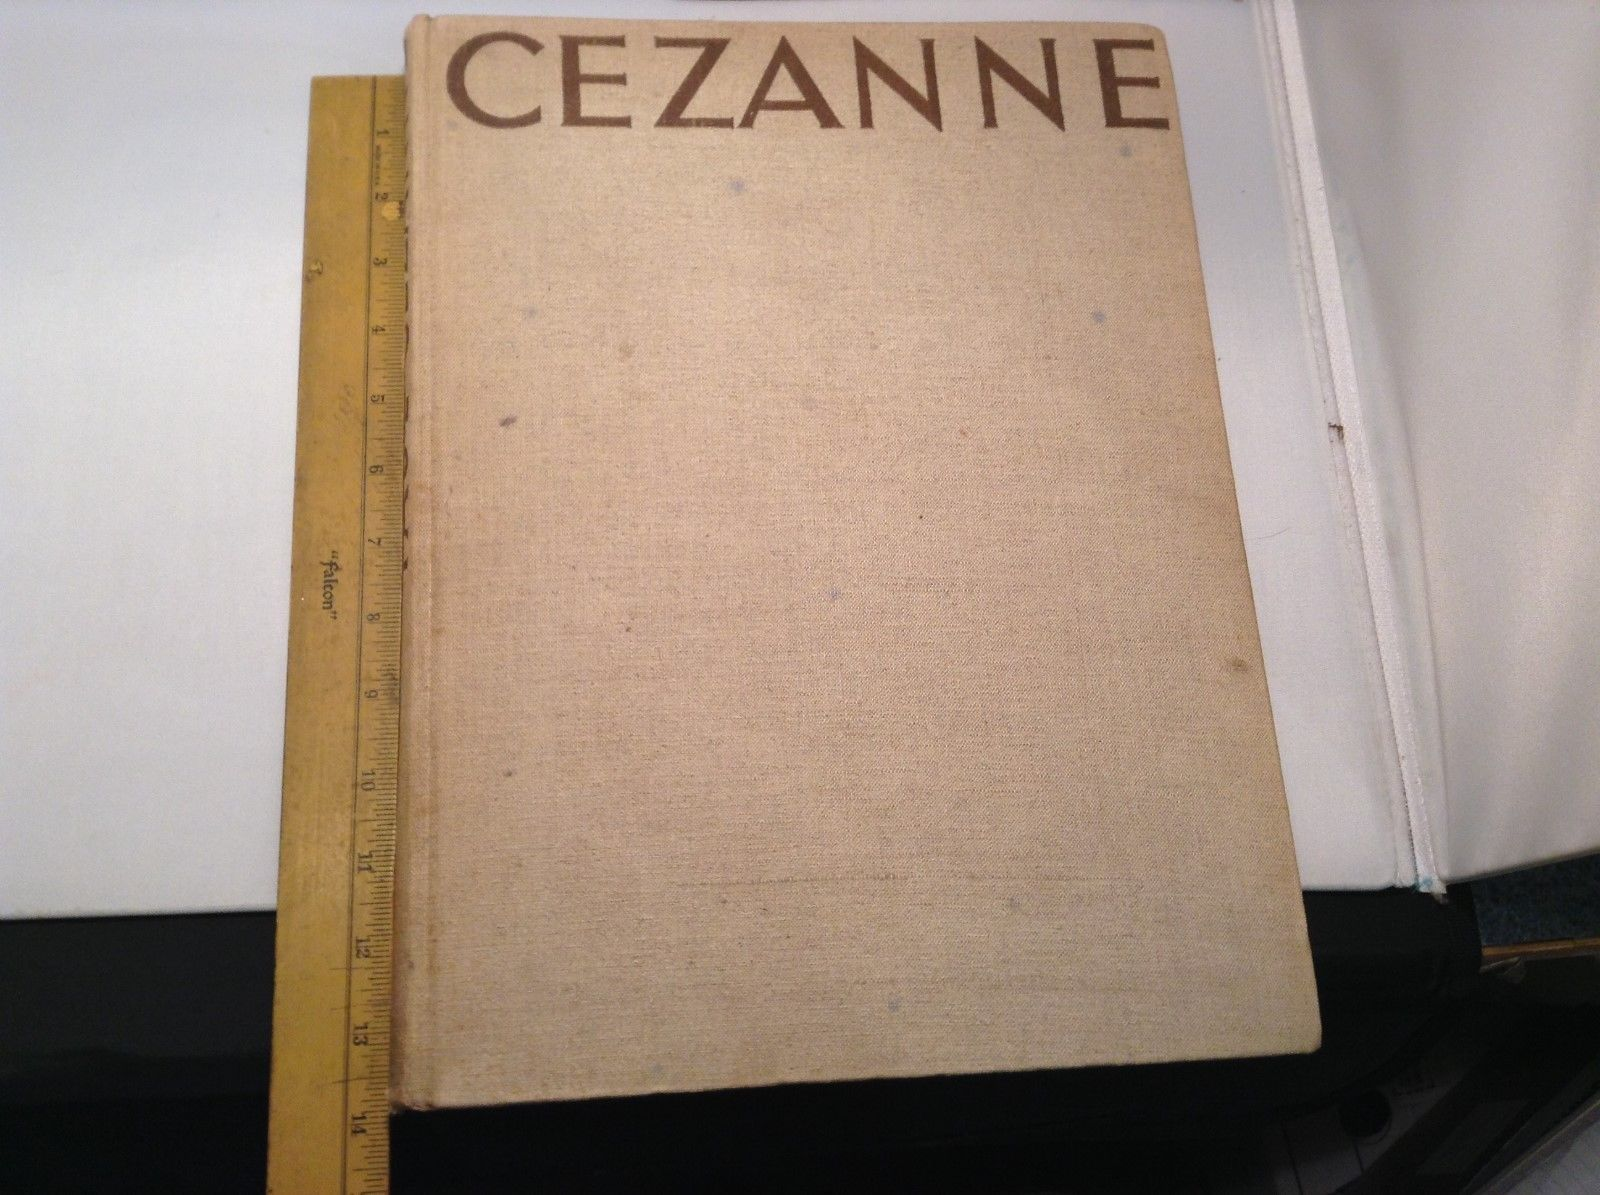 Cezanne Antique Coffee Table Book Copyright 1937